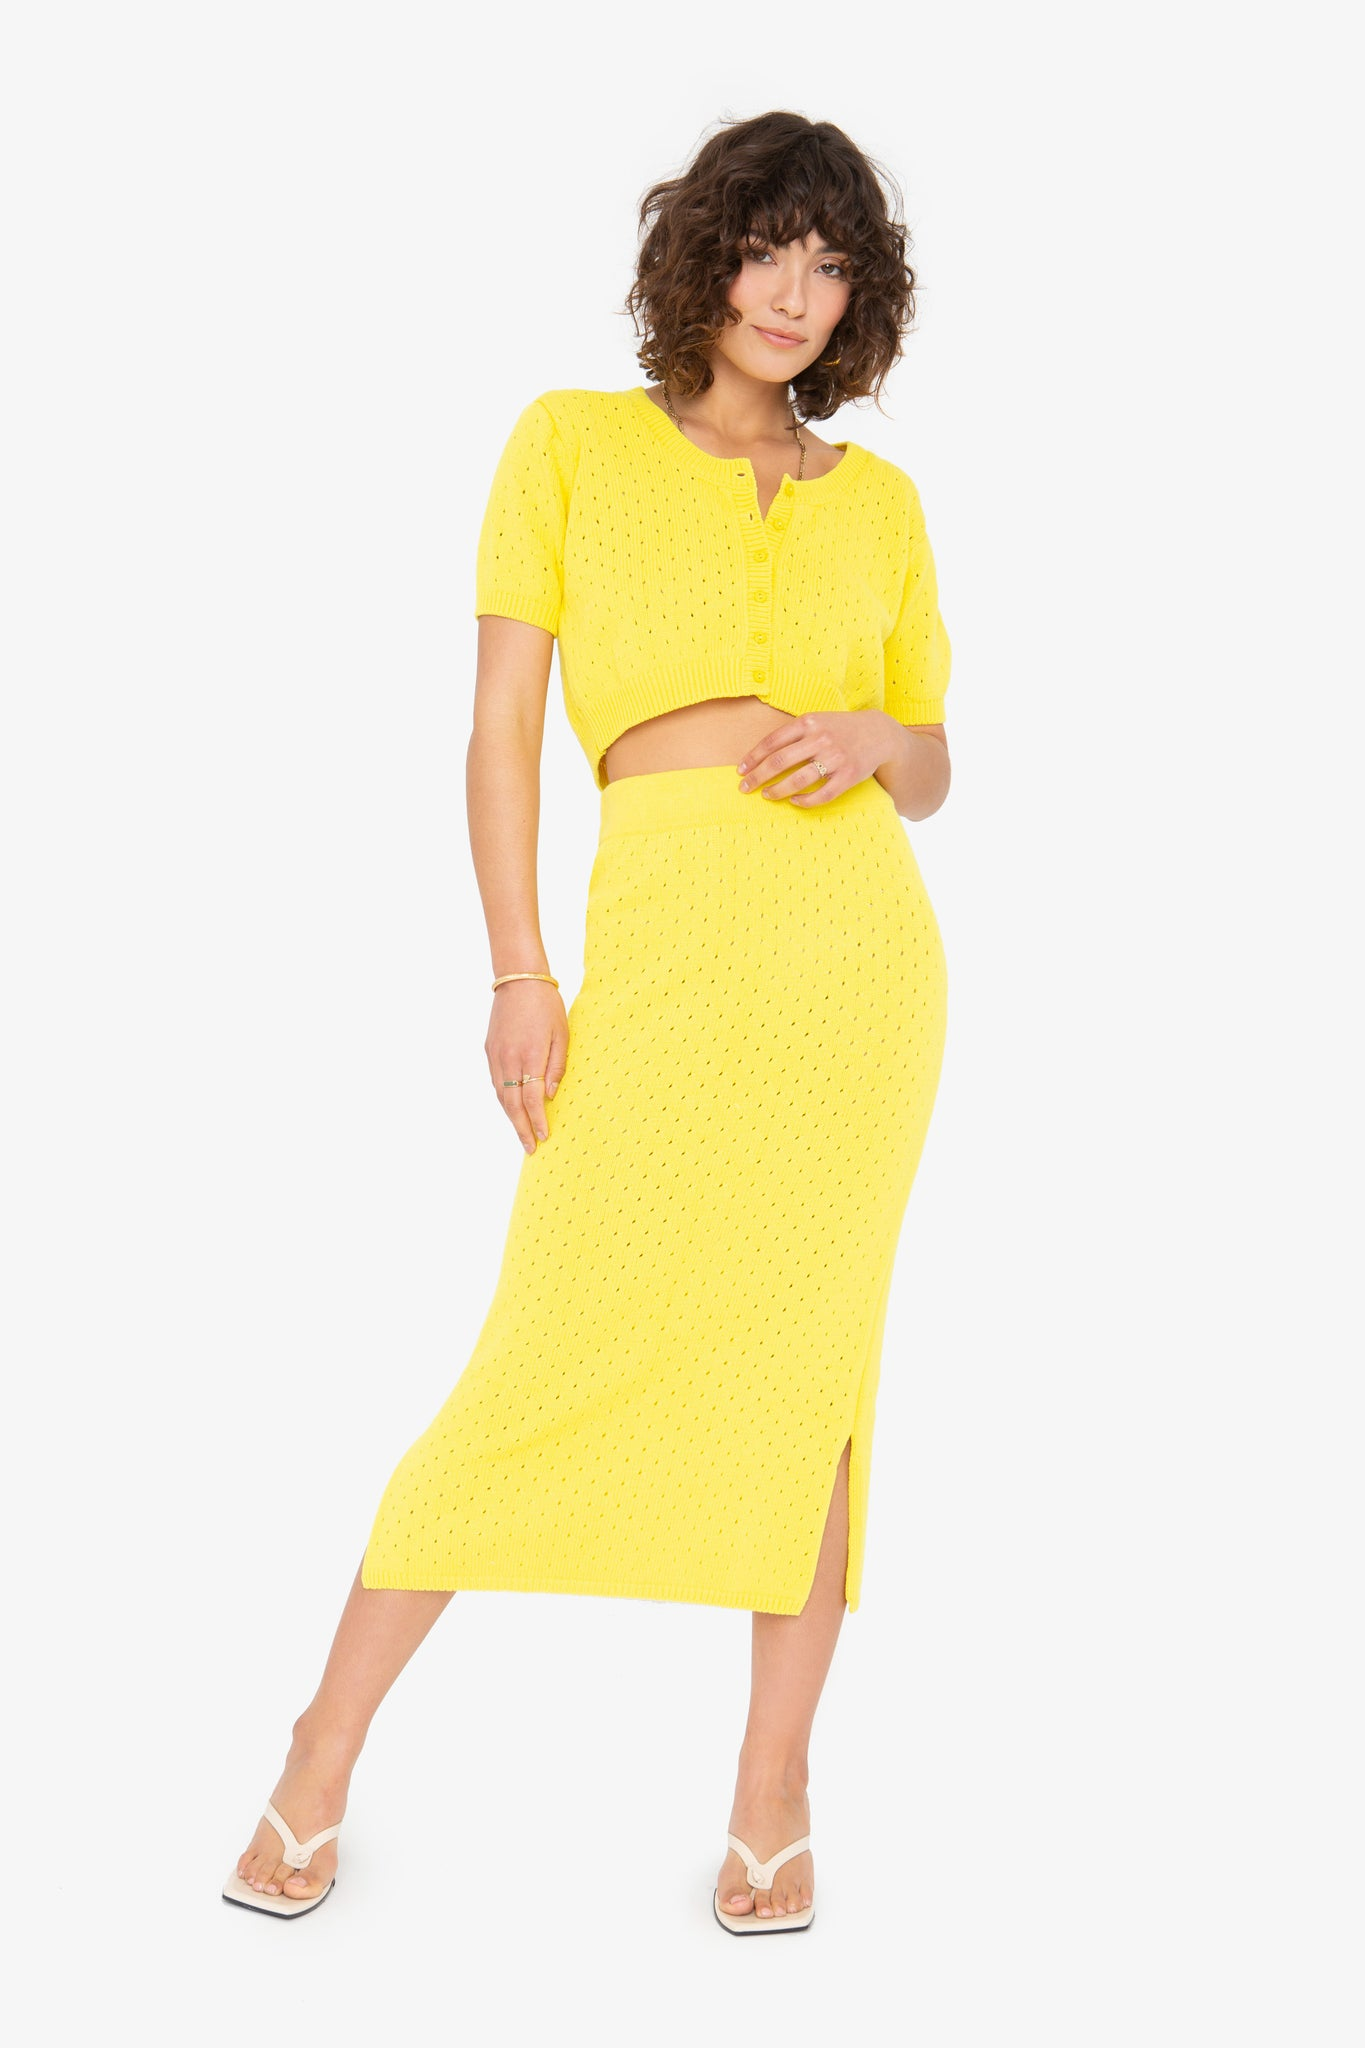 Genny Skirt - Lemon